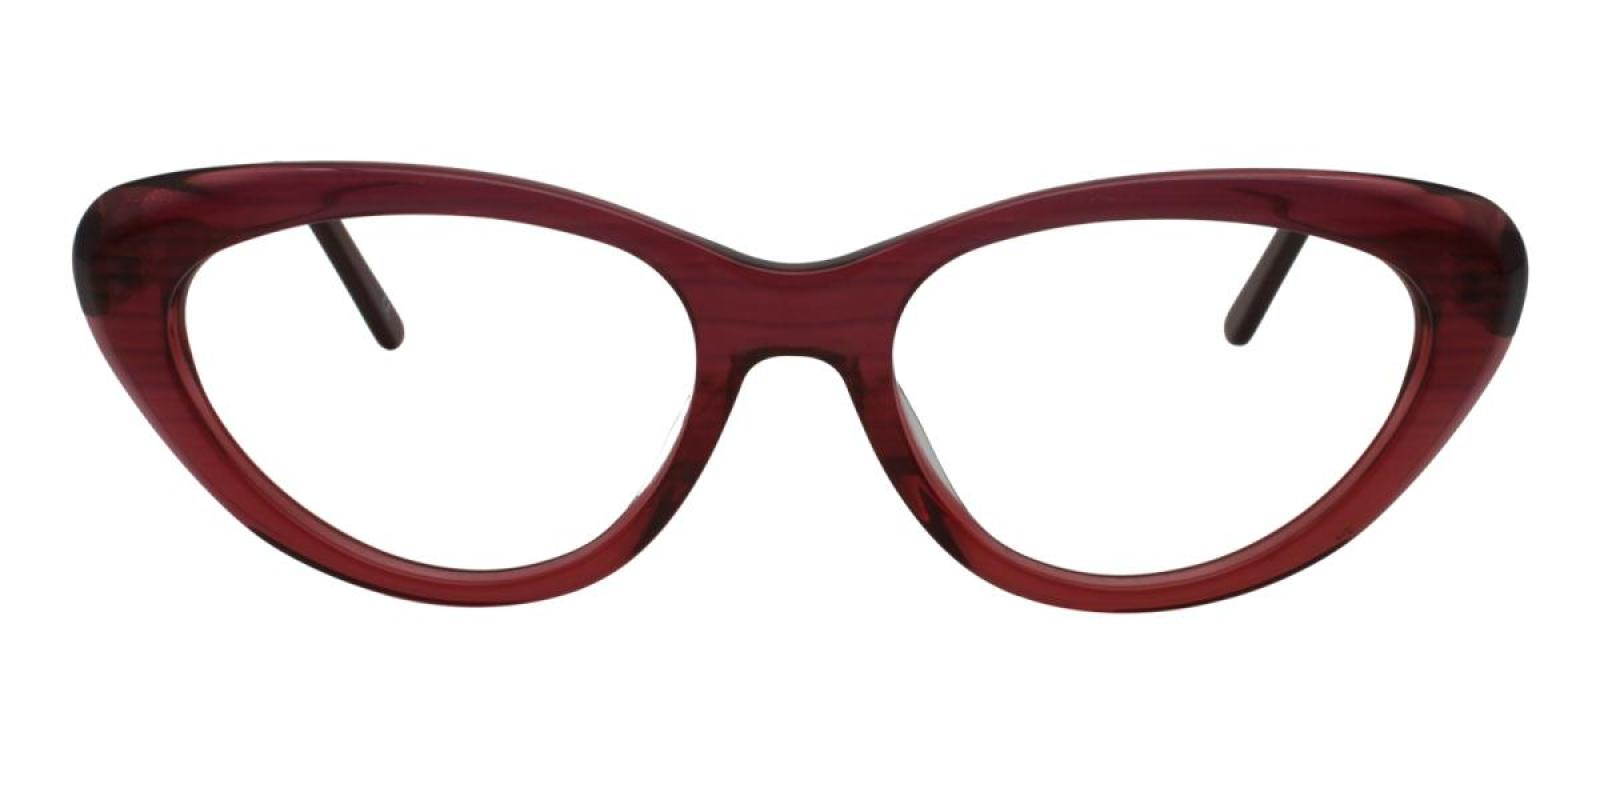 Jeanne-Red-Cat-Acetate-Eyeglasses-detail